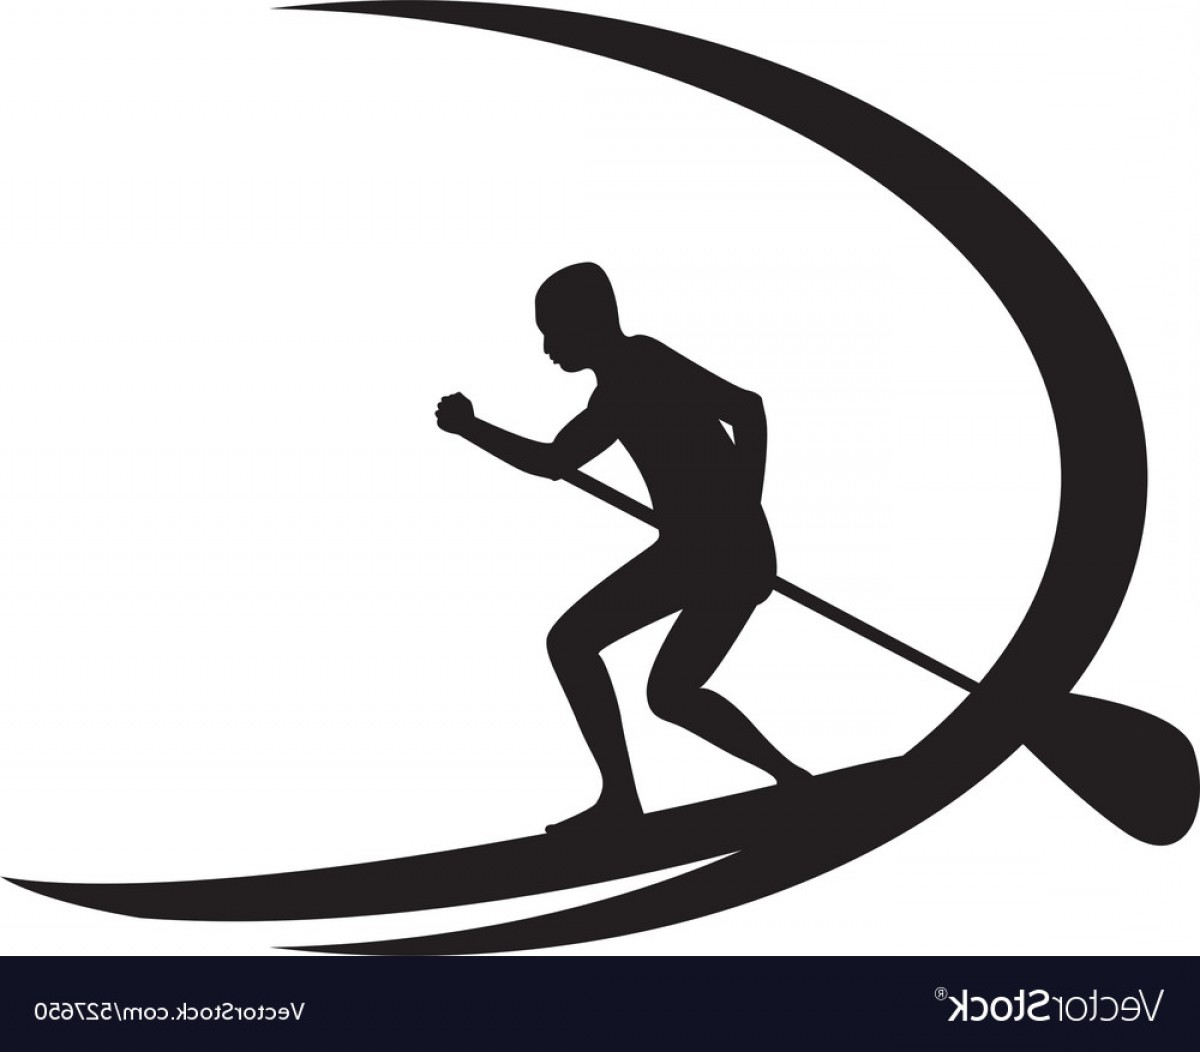 Stand Up Paddle Boarder Vector: Stand Up Paddle Boarding Vector